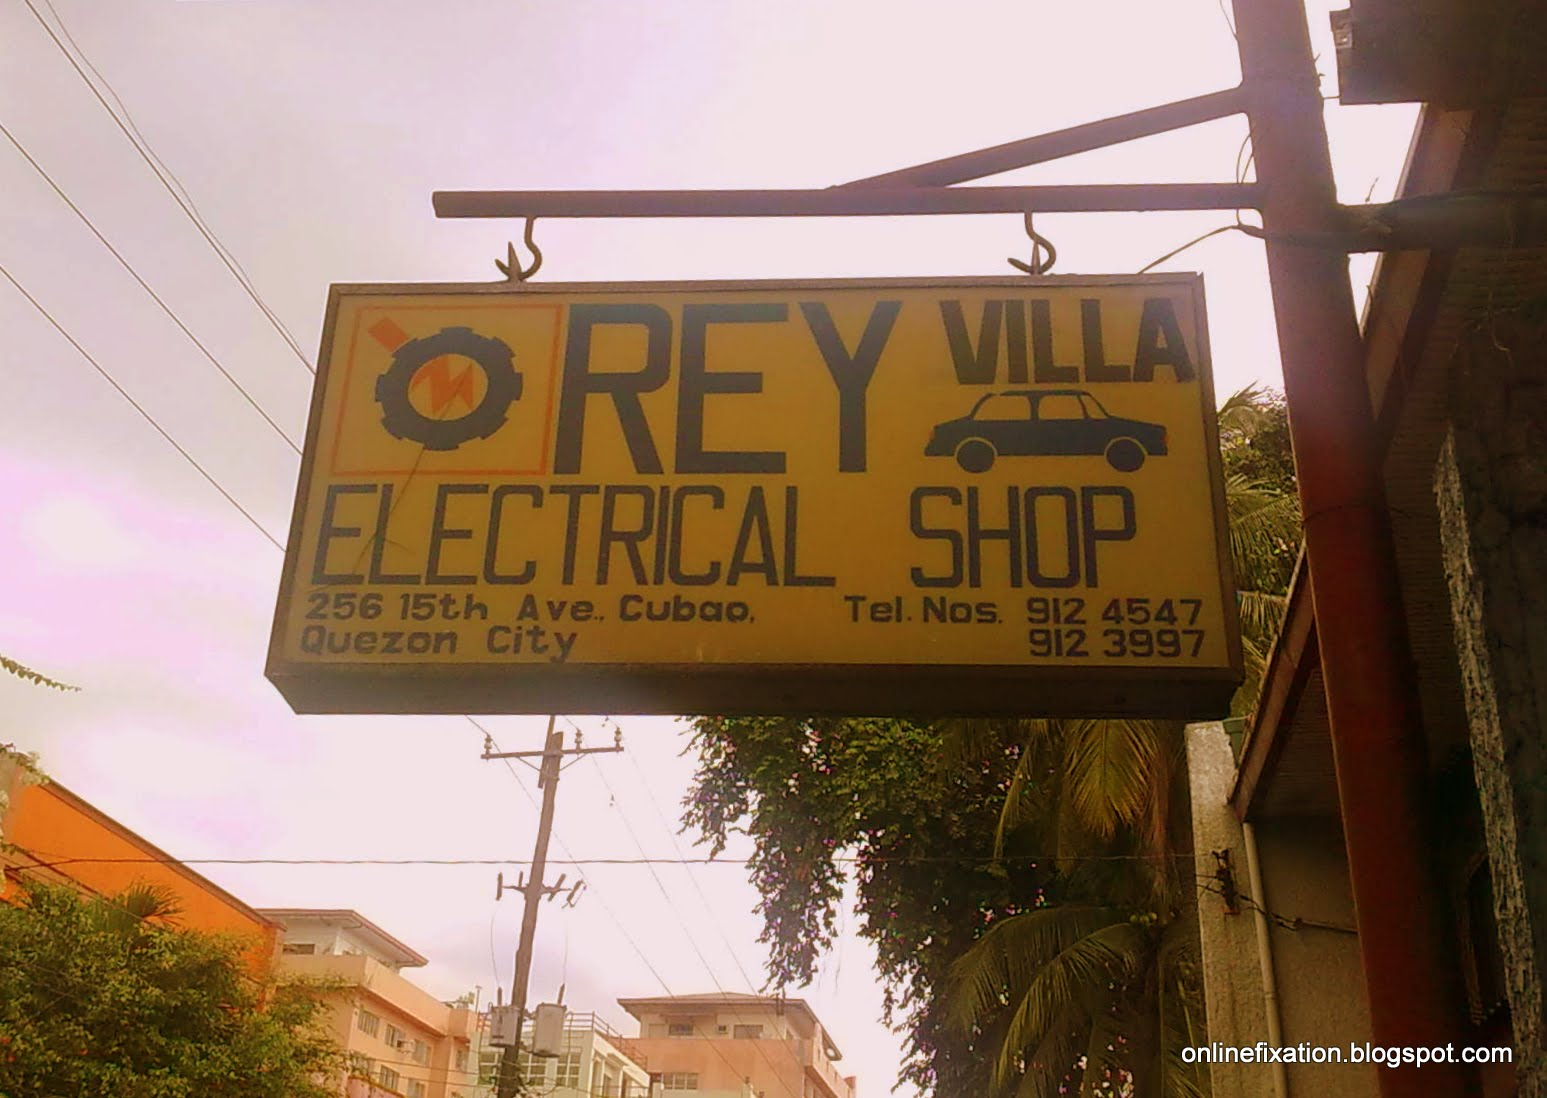 Onlinefixation Reys Electrical Shop In Cubao